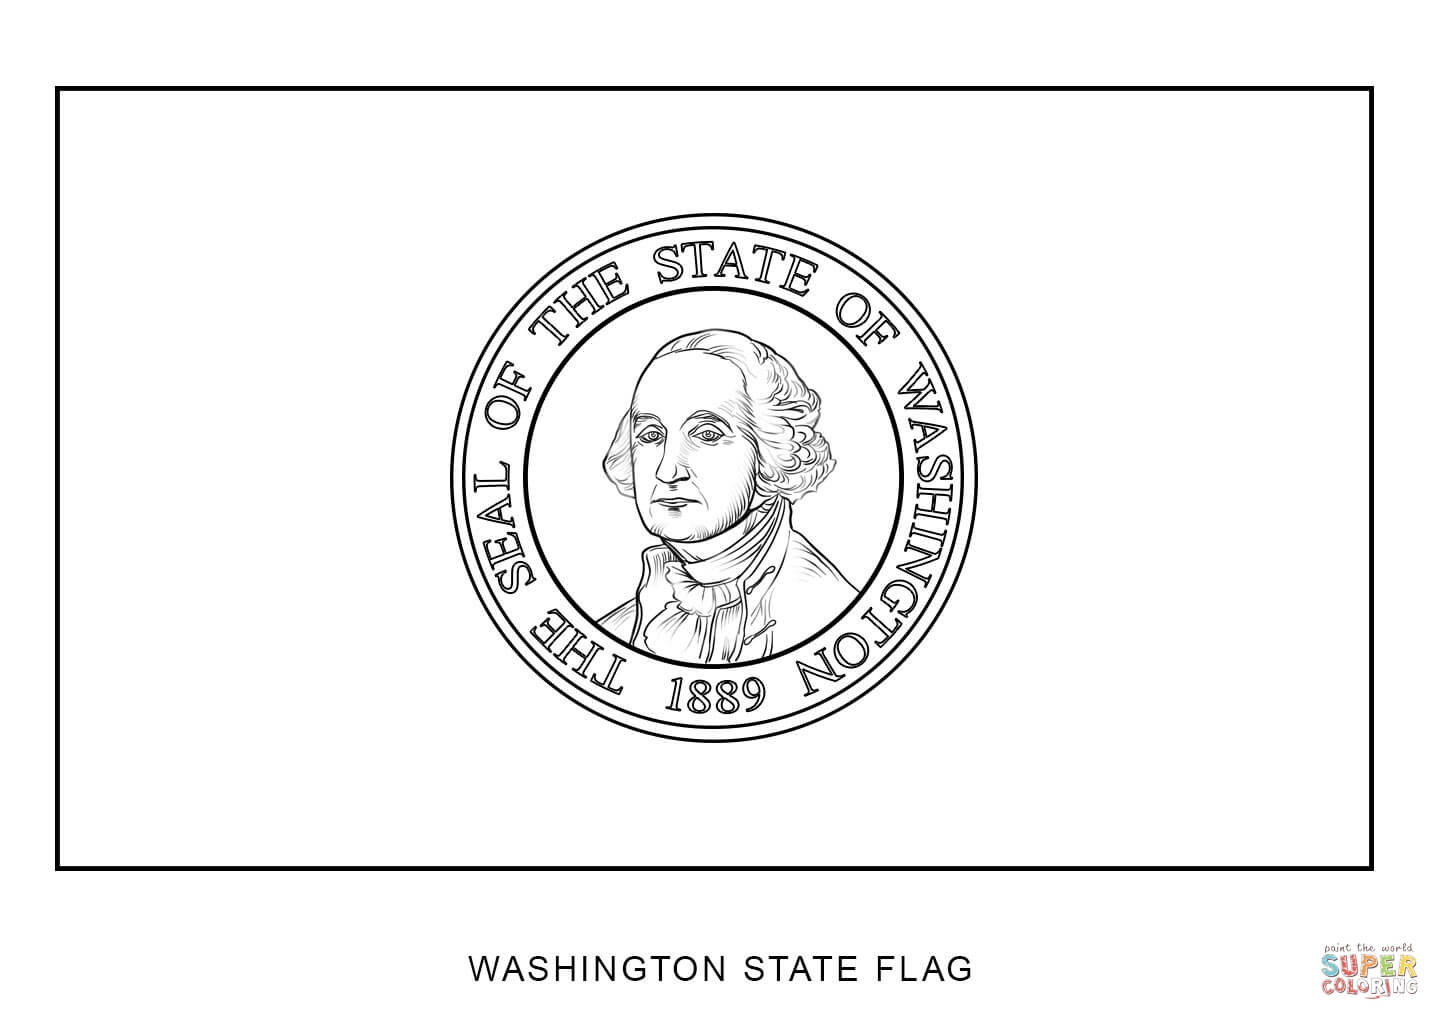 Washington State Flag Coloring Page